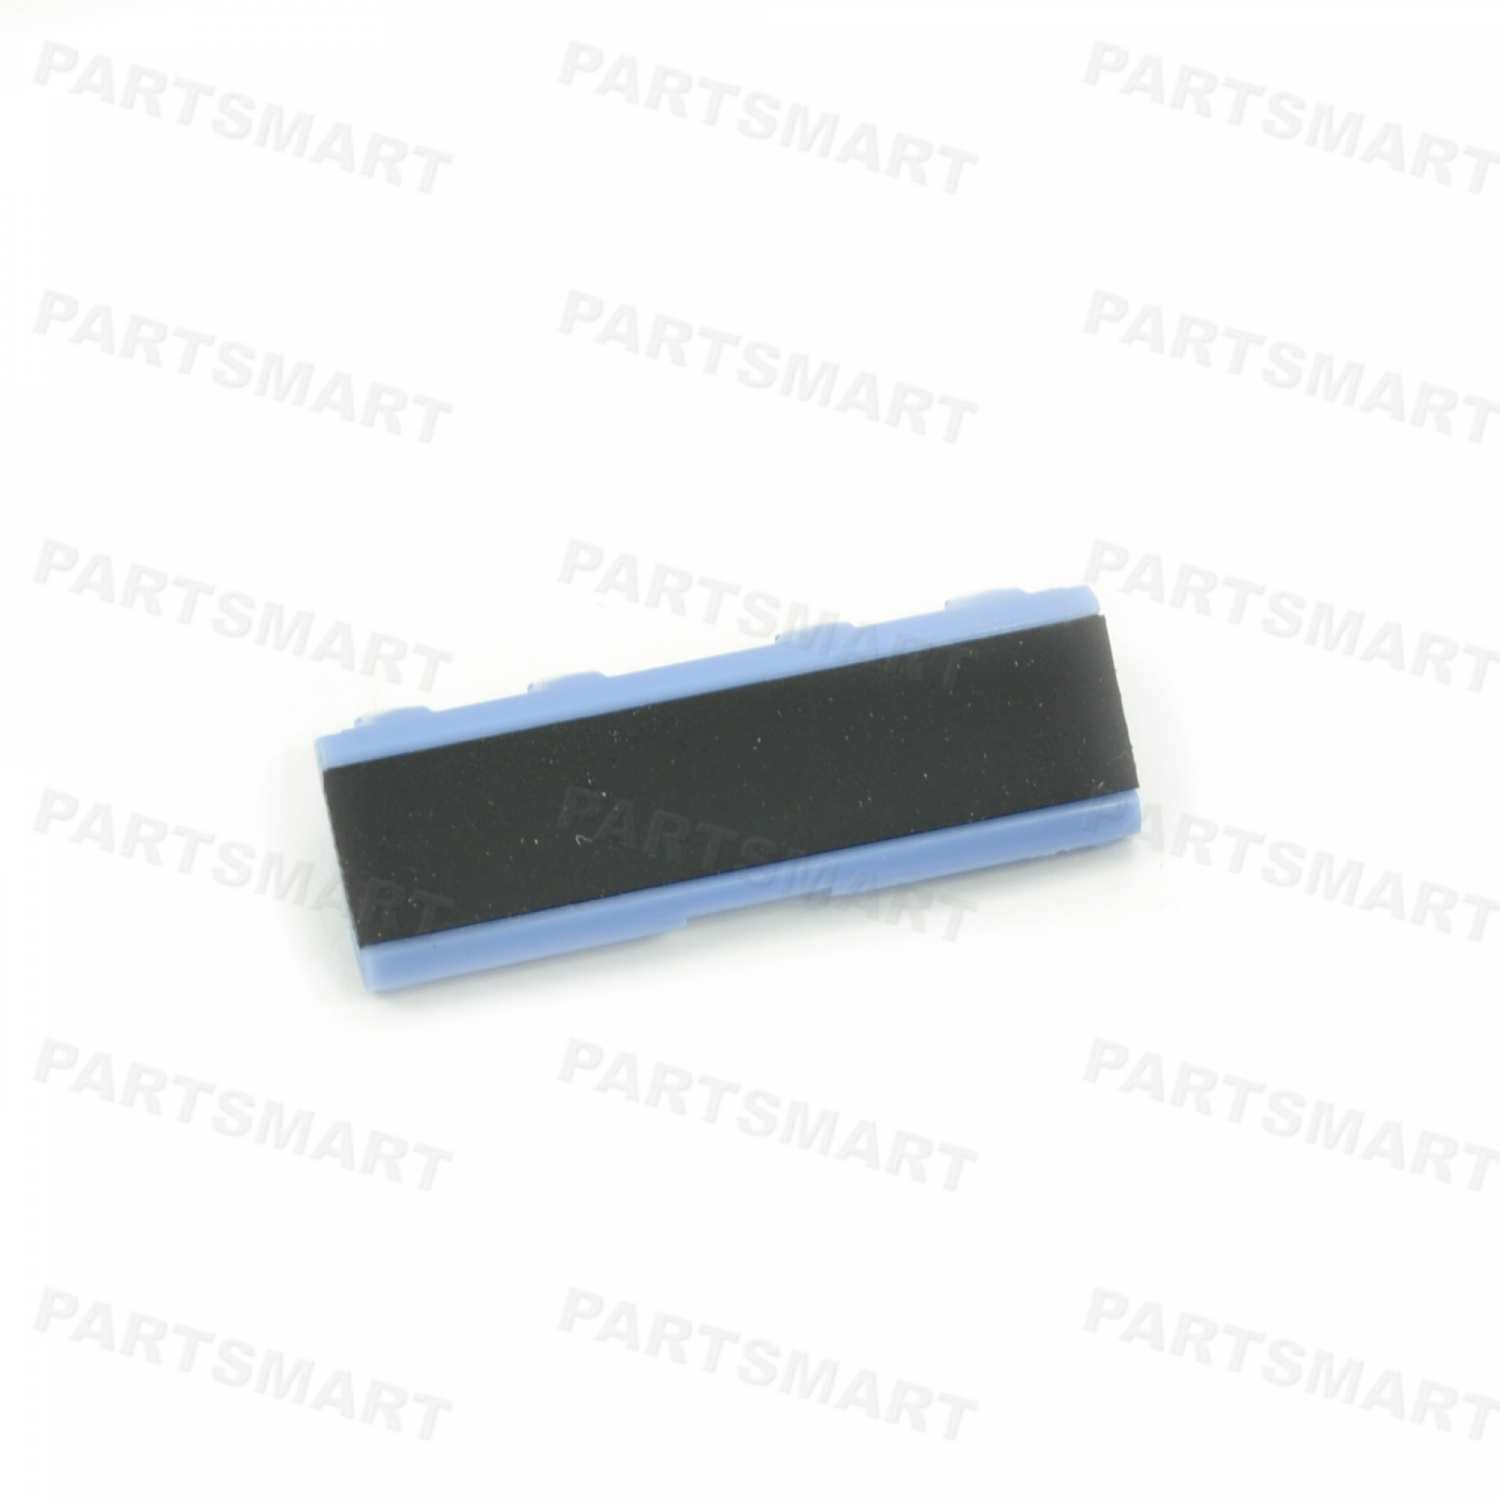 RM2-6406-000 Separation Pad, Tray 1 for HP Color LaserJet Pro M377 MFP, Color LaserJet Pro M452, Color LaserJet Pro M477 MFP